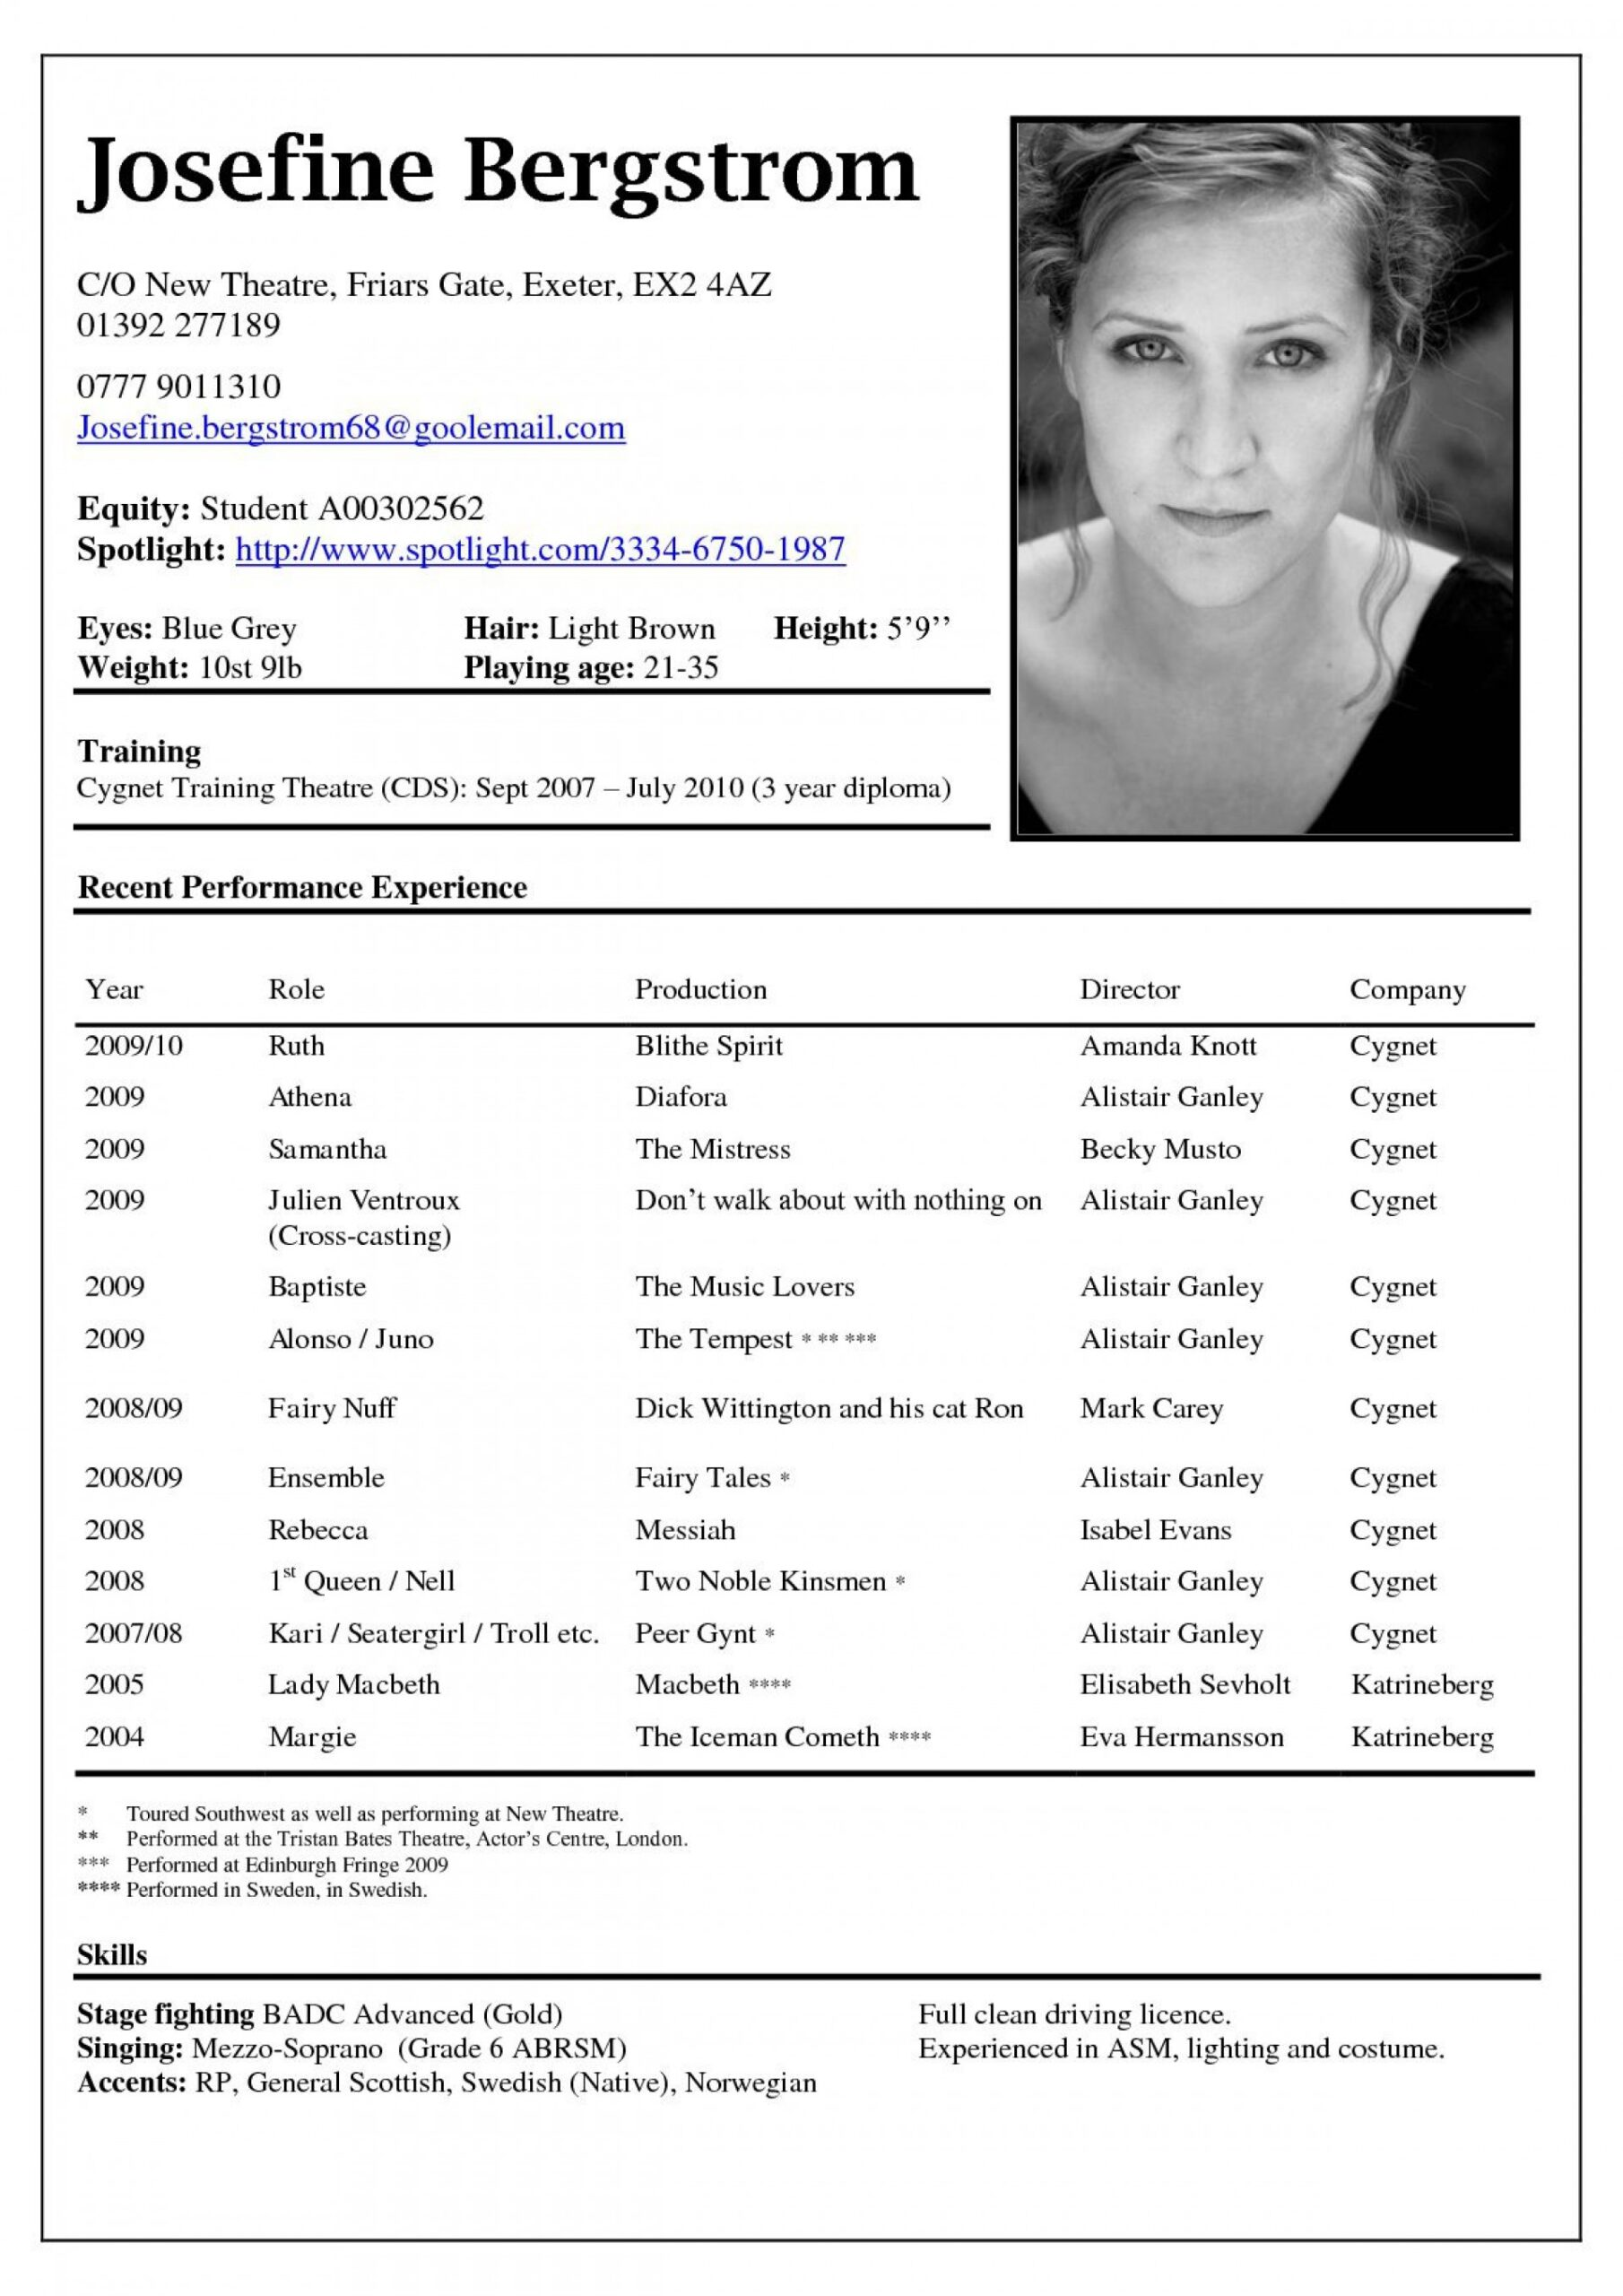 free acting resume template addictionary actor model rare highest quality oilfield Resume Actor Model Resume Template